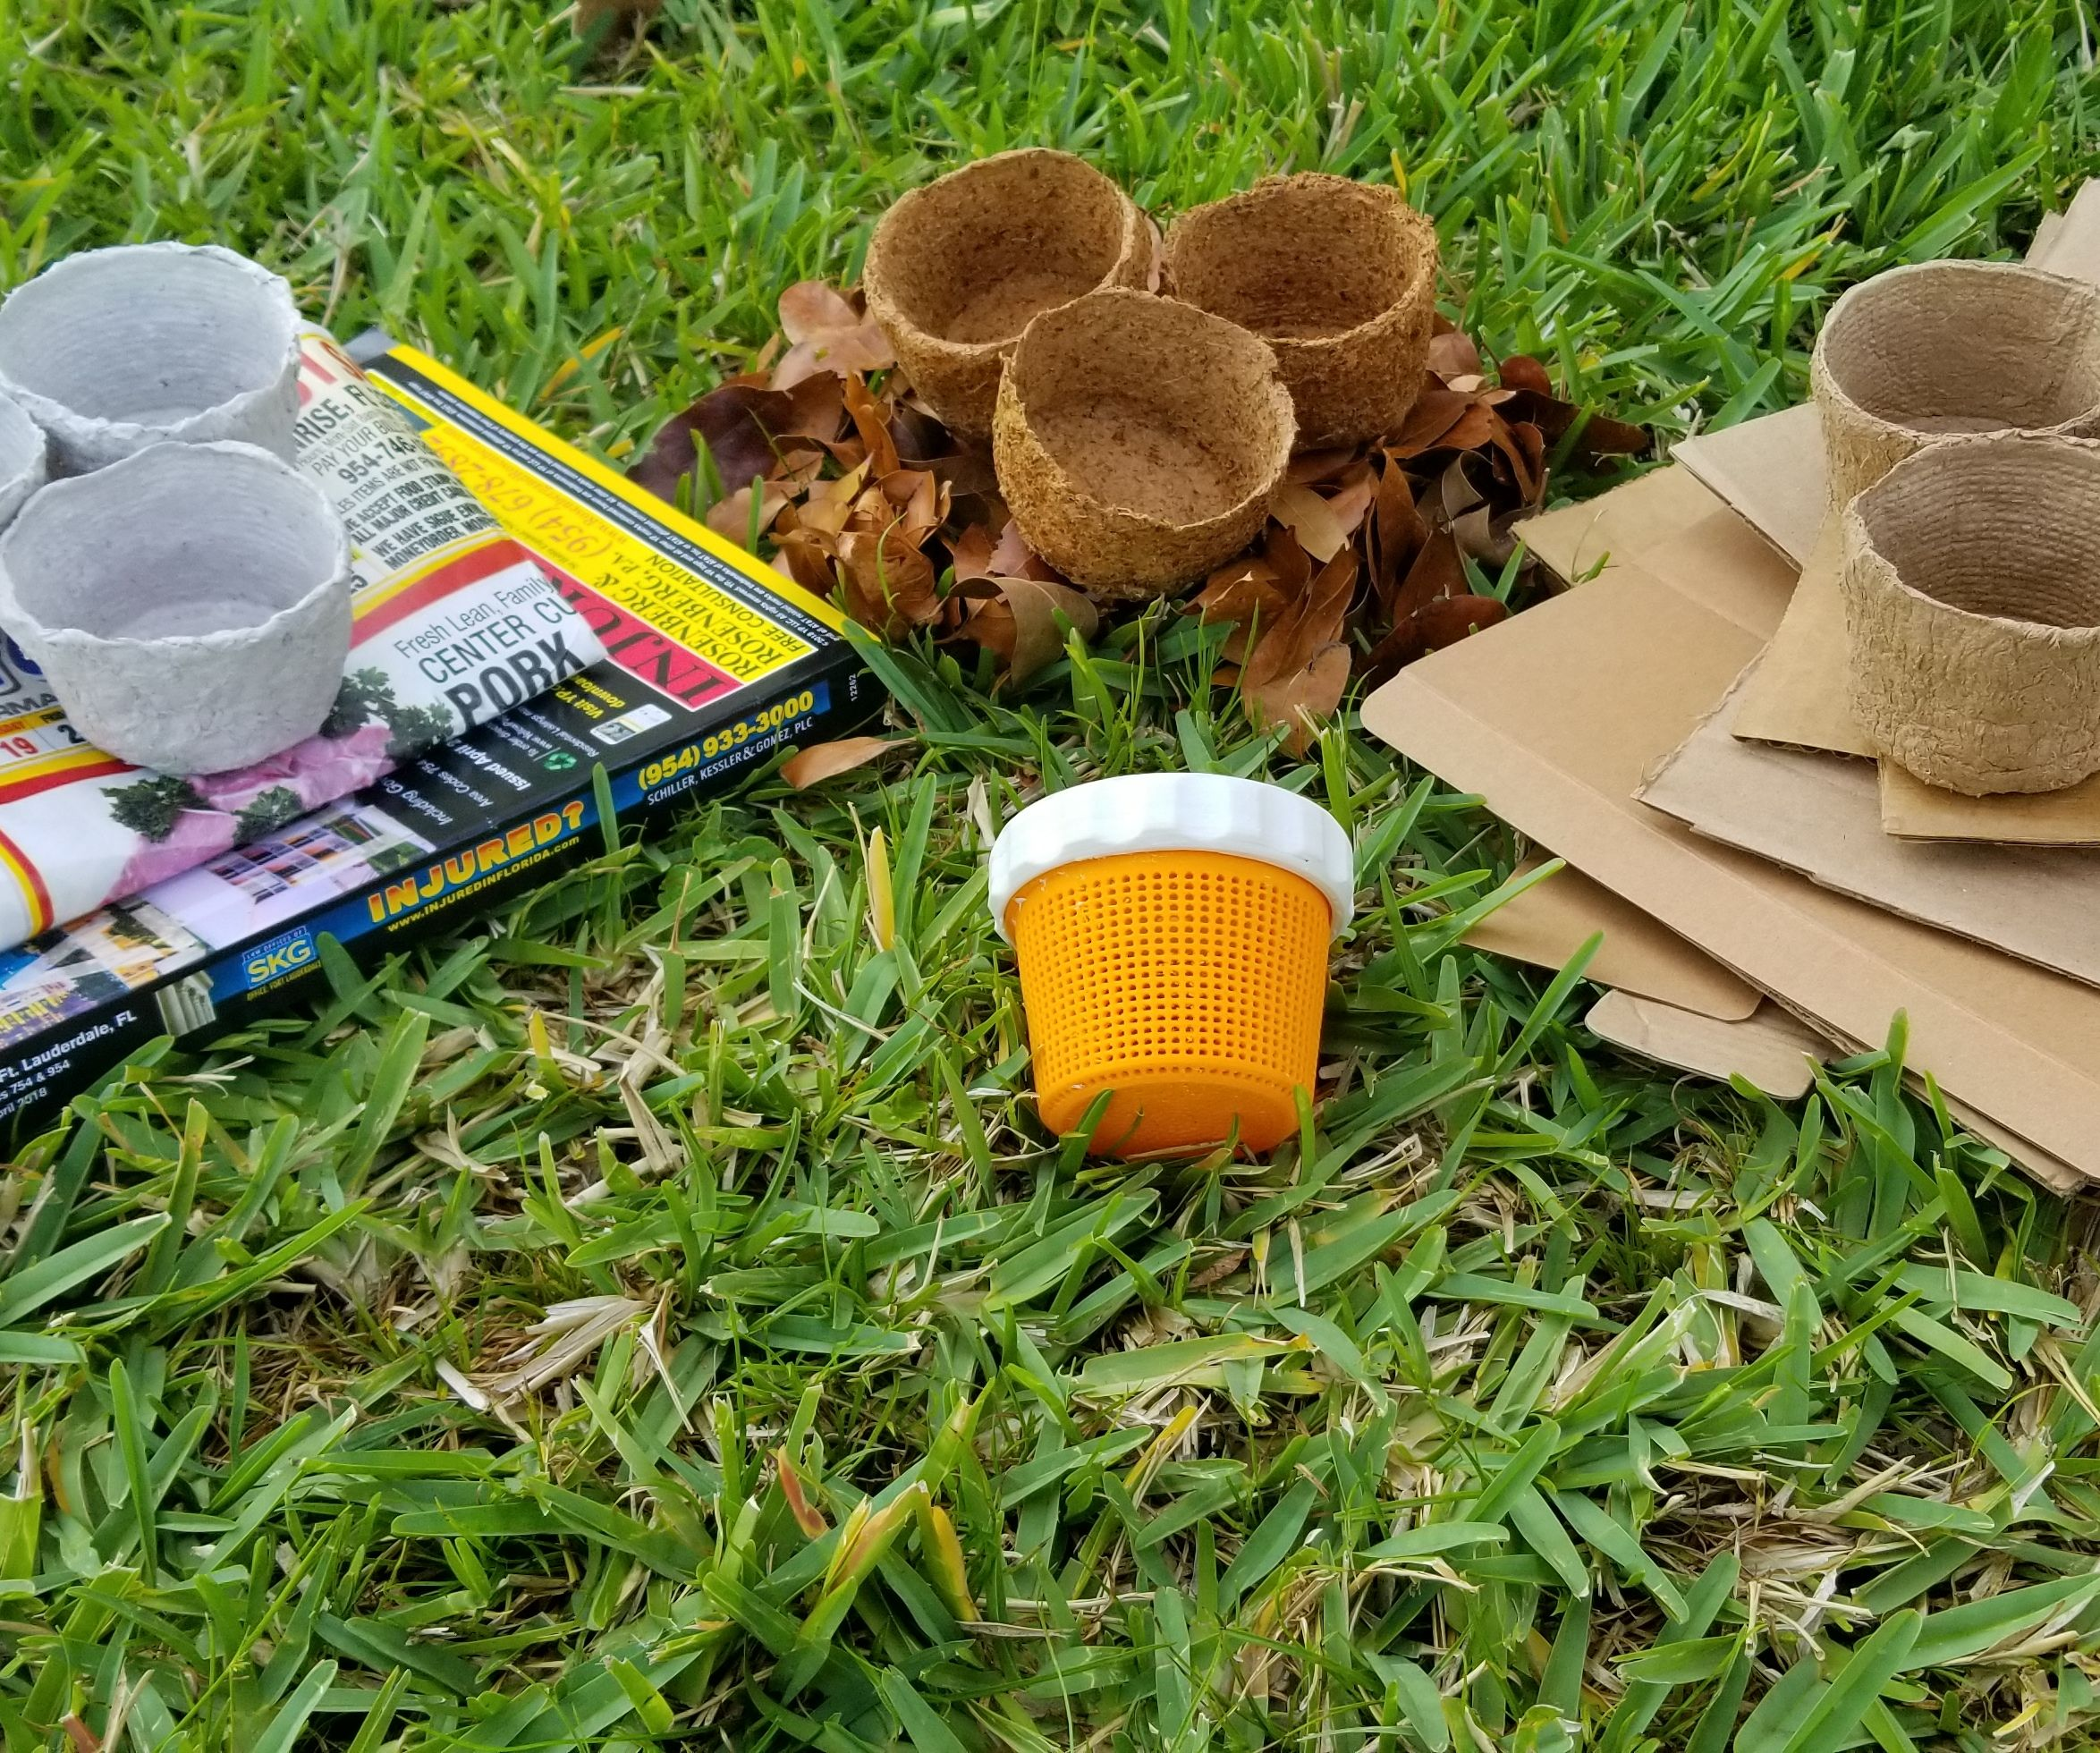 Turn Your Trash Into Biodegradable Pots